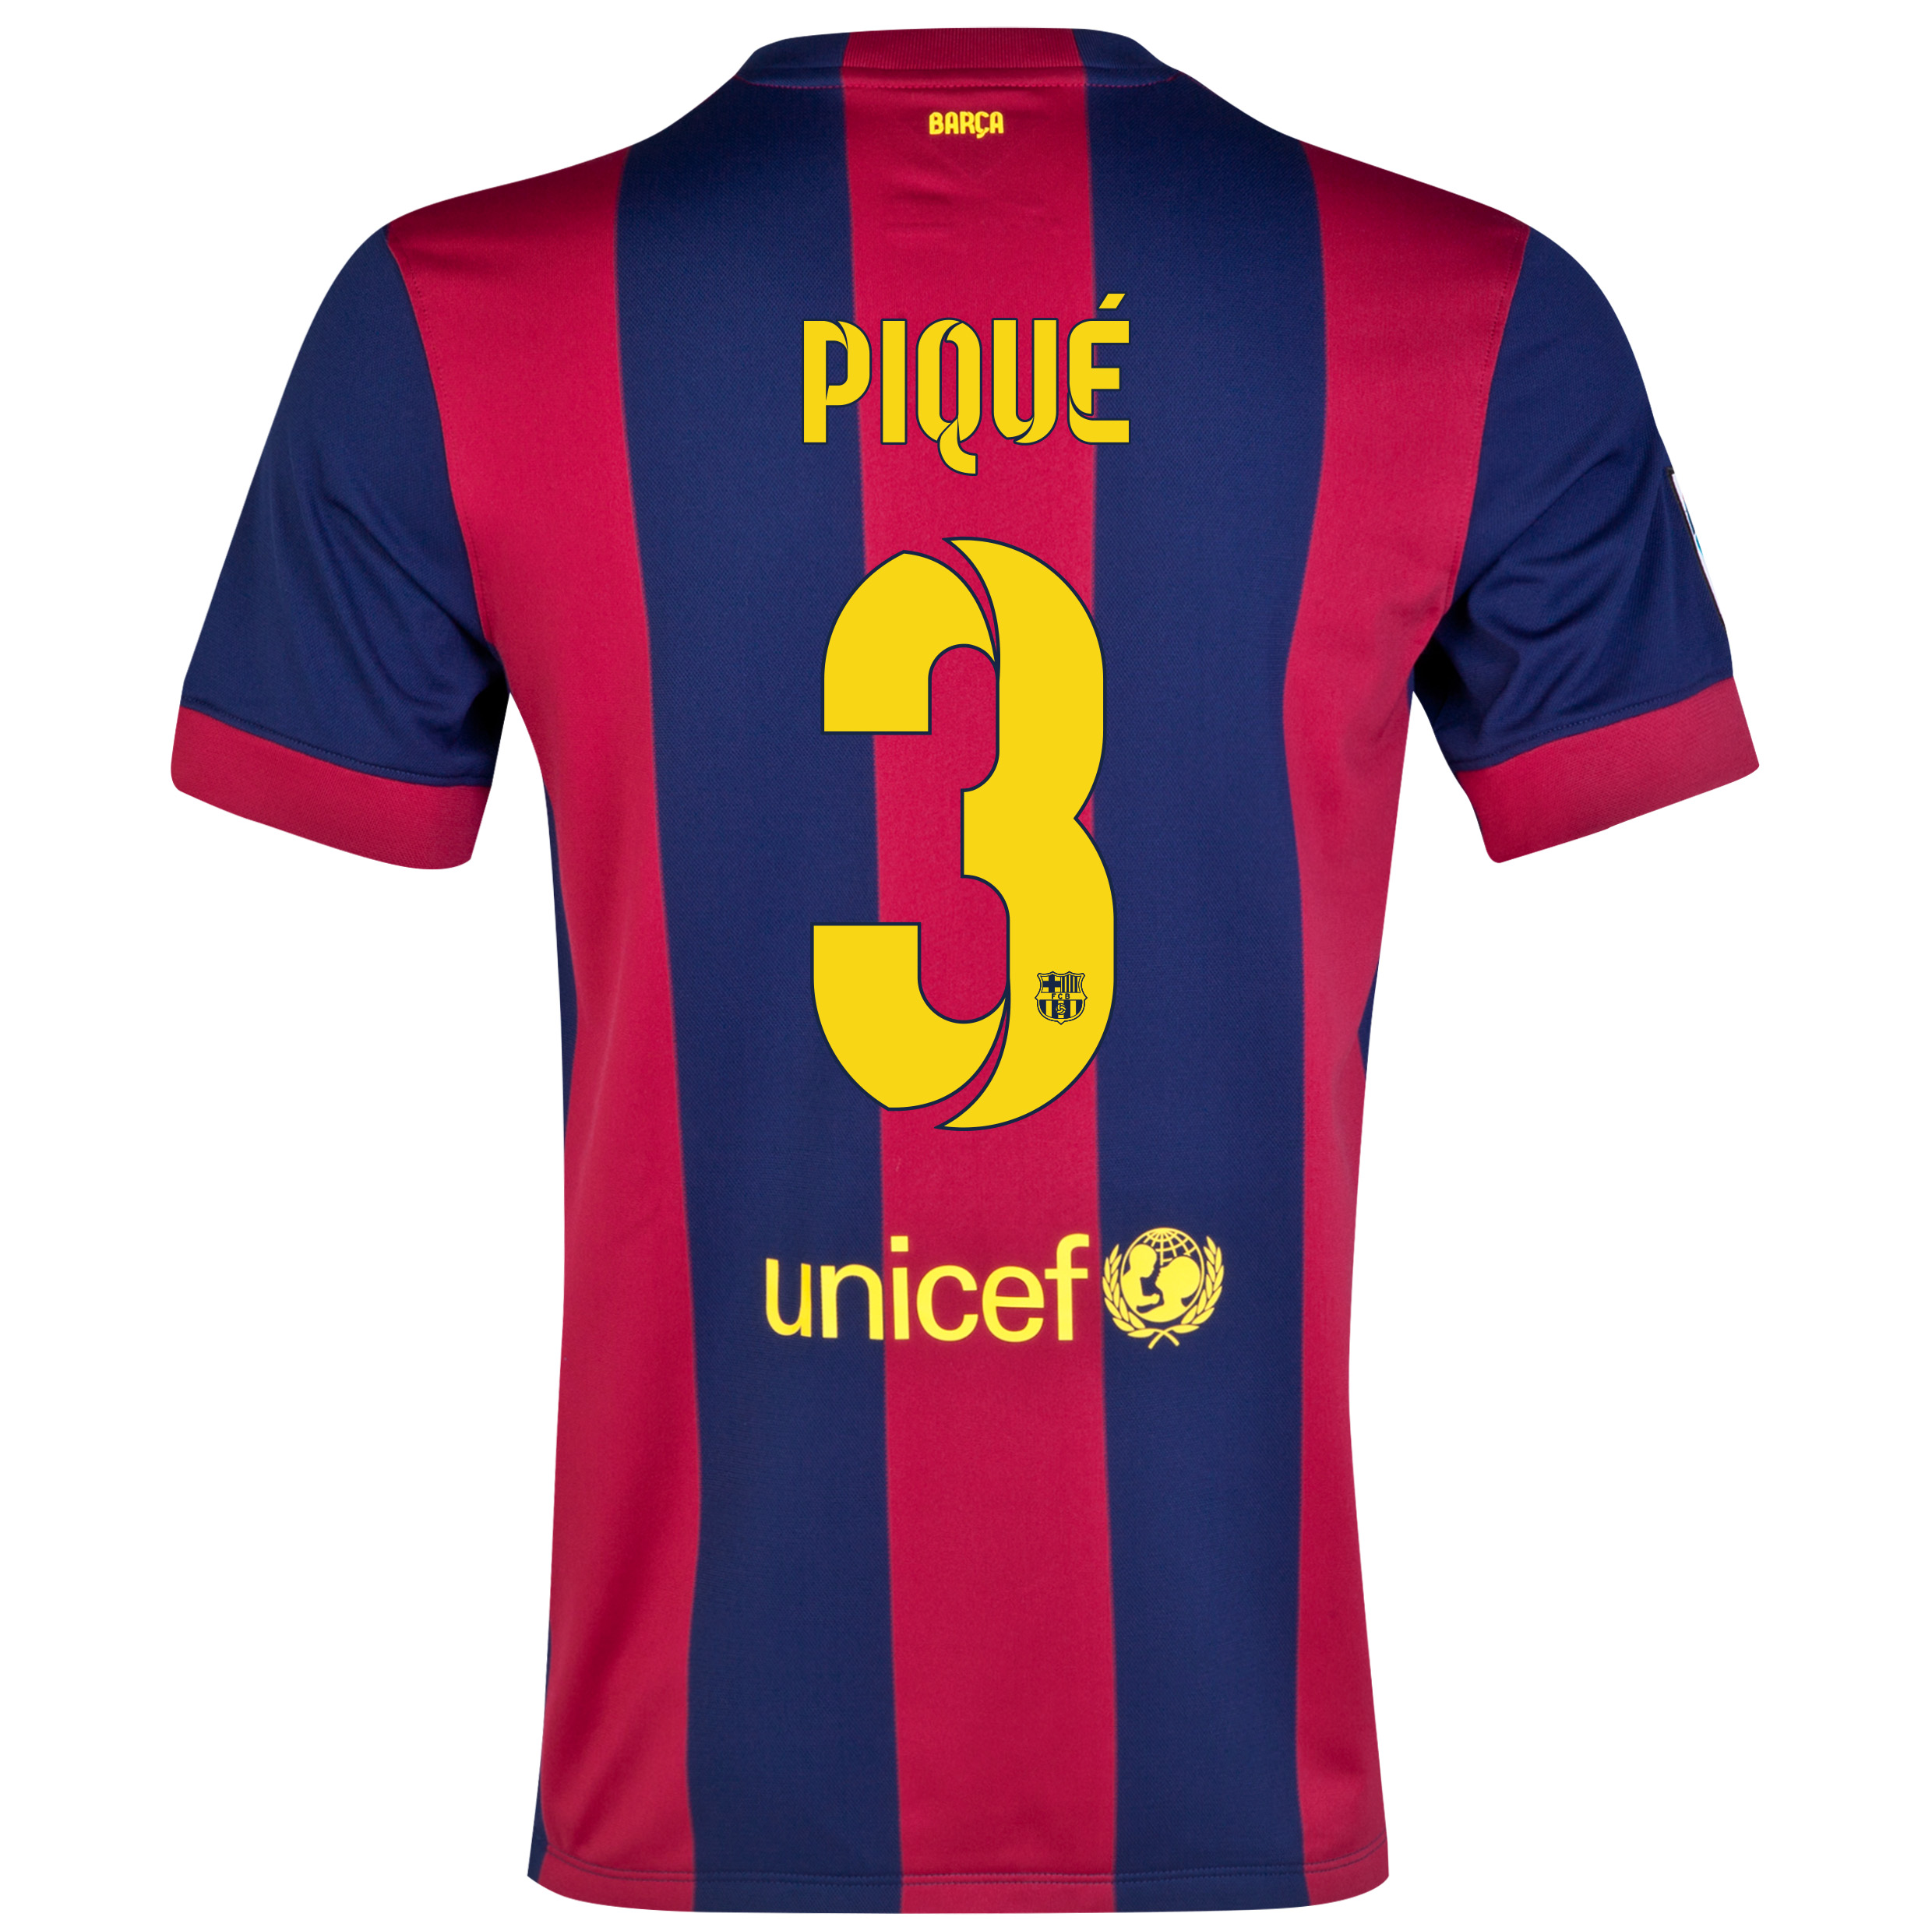 Barcelona Home Shirt 2014/15 - Kids Blue with Pique 3 printing